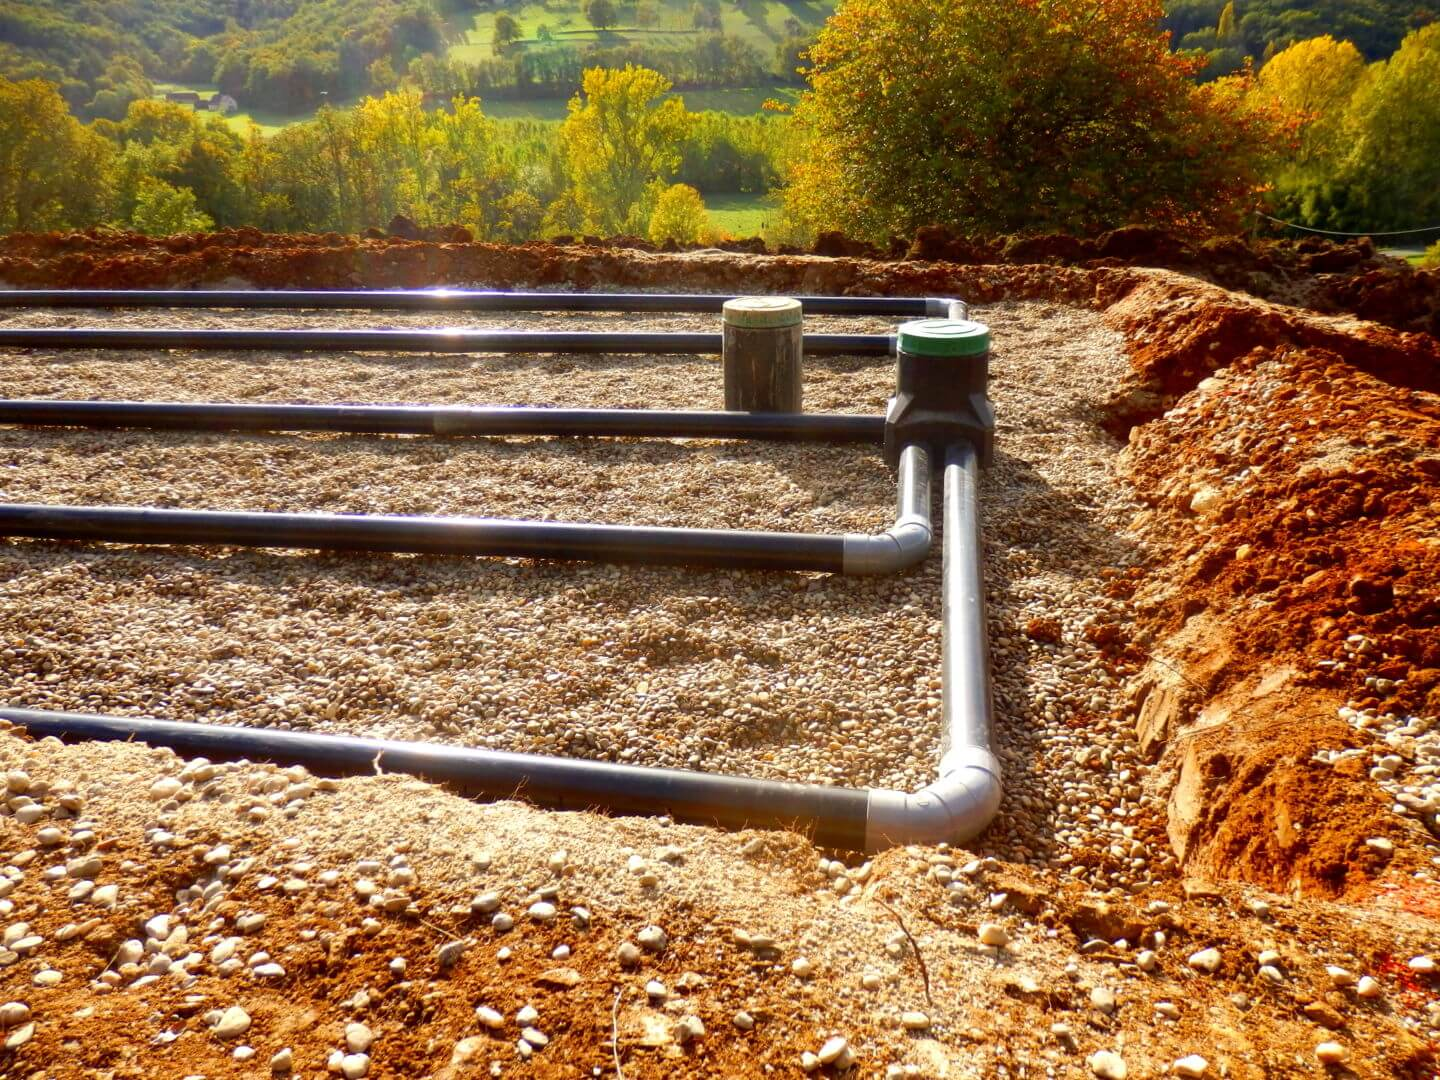 Municipal and Community Septic Systems-Bakersfield Septic Tank Services, Installation, & Repairs-We offer Septic Service & Repairs, Septic Tank Installations, Septic Tank Cleaning, Commercial, Septic System, Drain Cleaning, Line Snaking, Portable Toilet, Grease Trap Pumping & Cleaning, Septic Tank Pumping, Sewage Pump, Sewer Line Repair, Septic Tank Replacement, Septic Maintenance, Sewer Line Replacement, Porta Potty Rentals